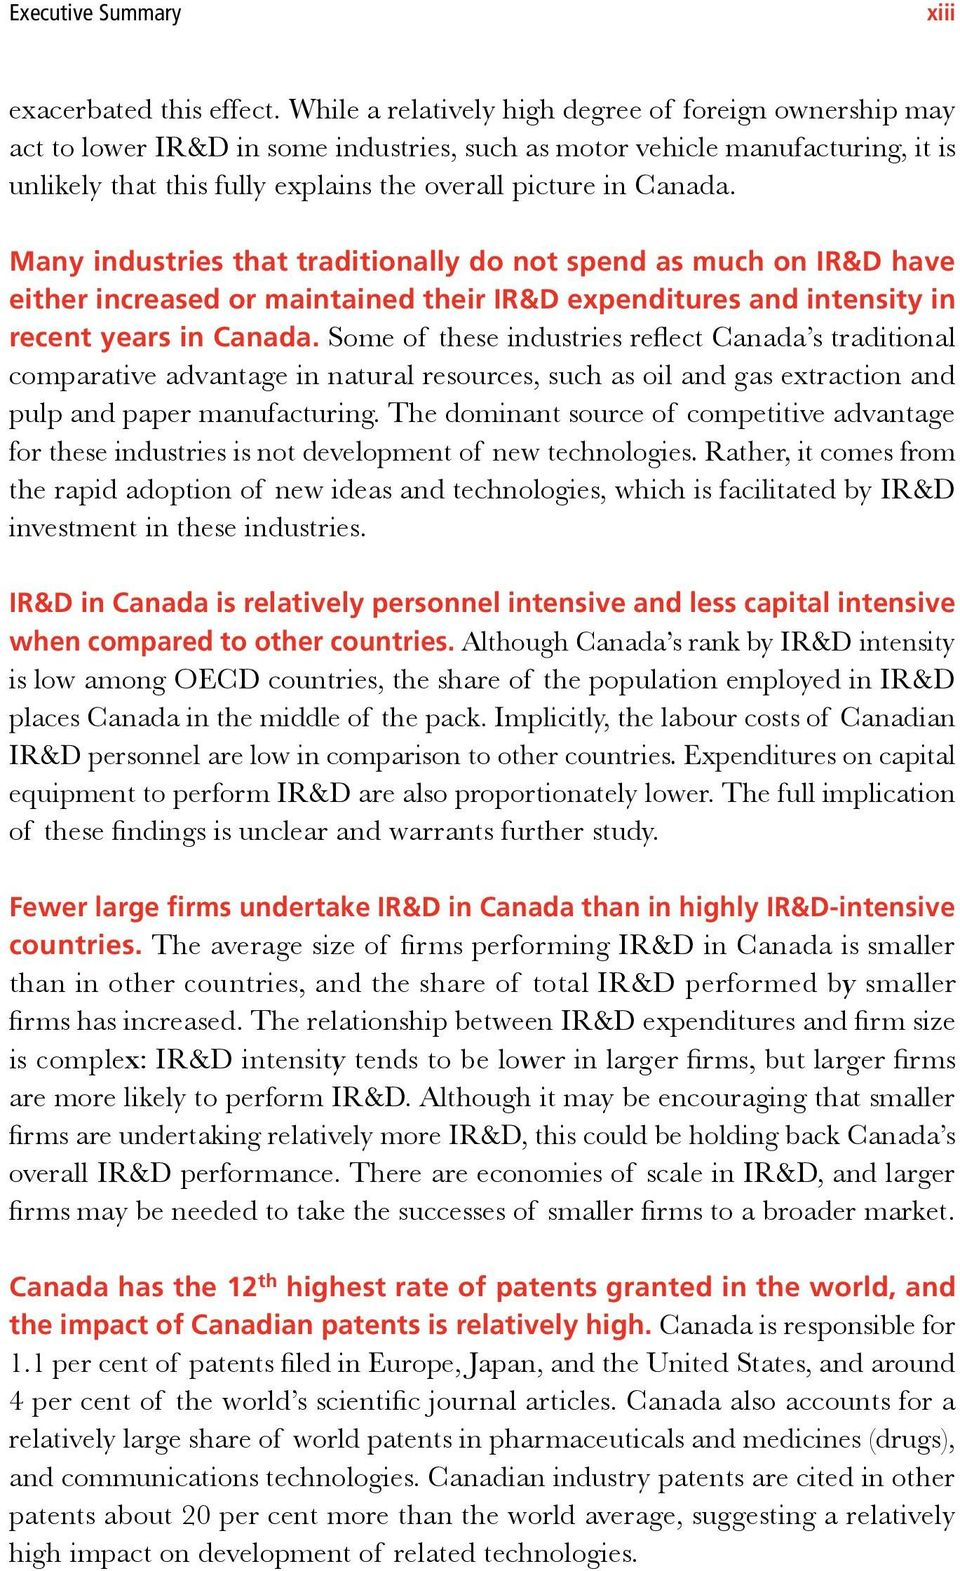 Canada. Many industries that traditionally do not spend as much on IR&D have either increased or maintained their IR&D expenditures and intensity in recent years in Canada.